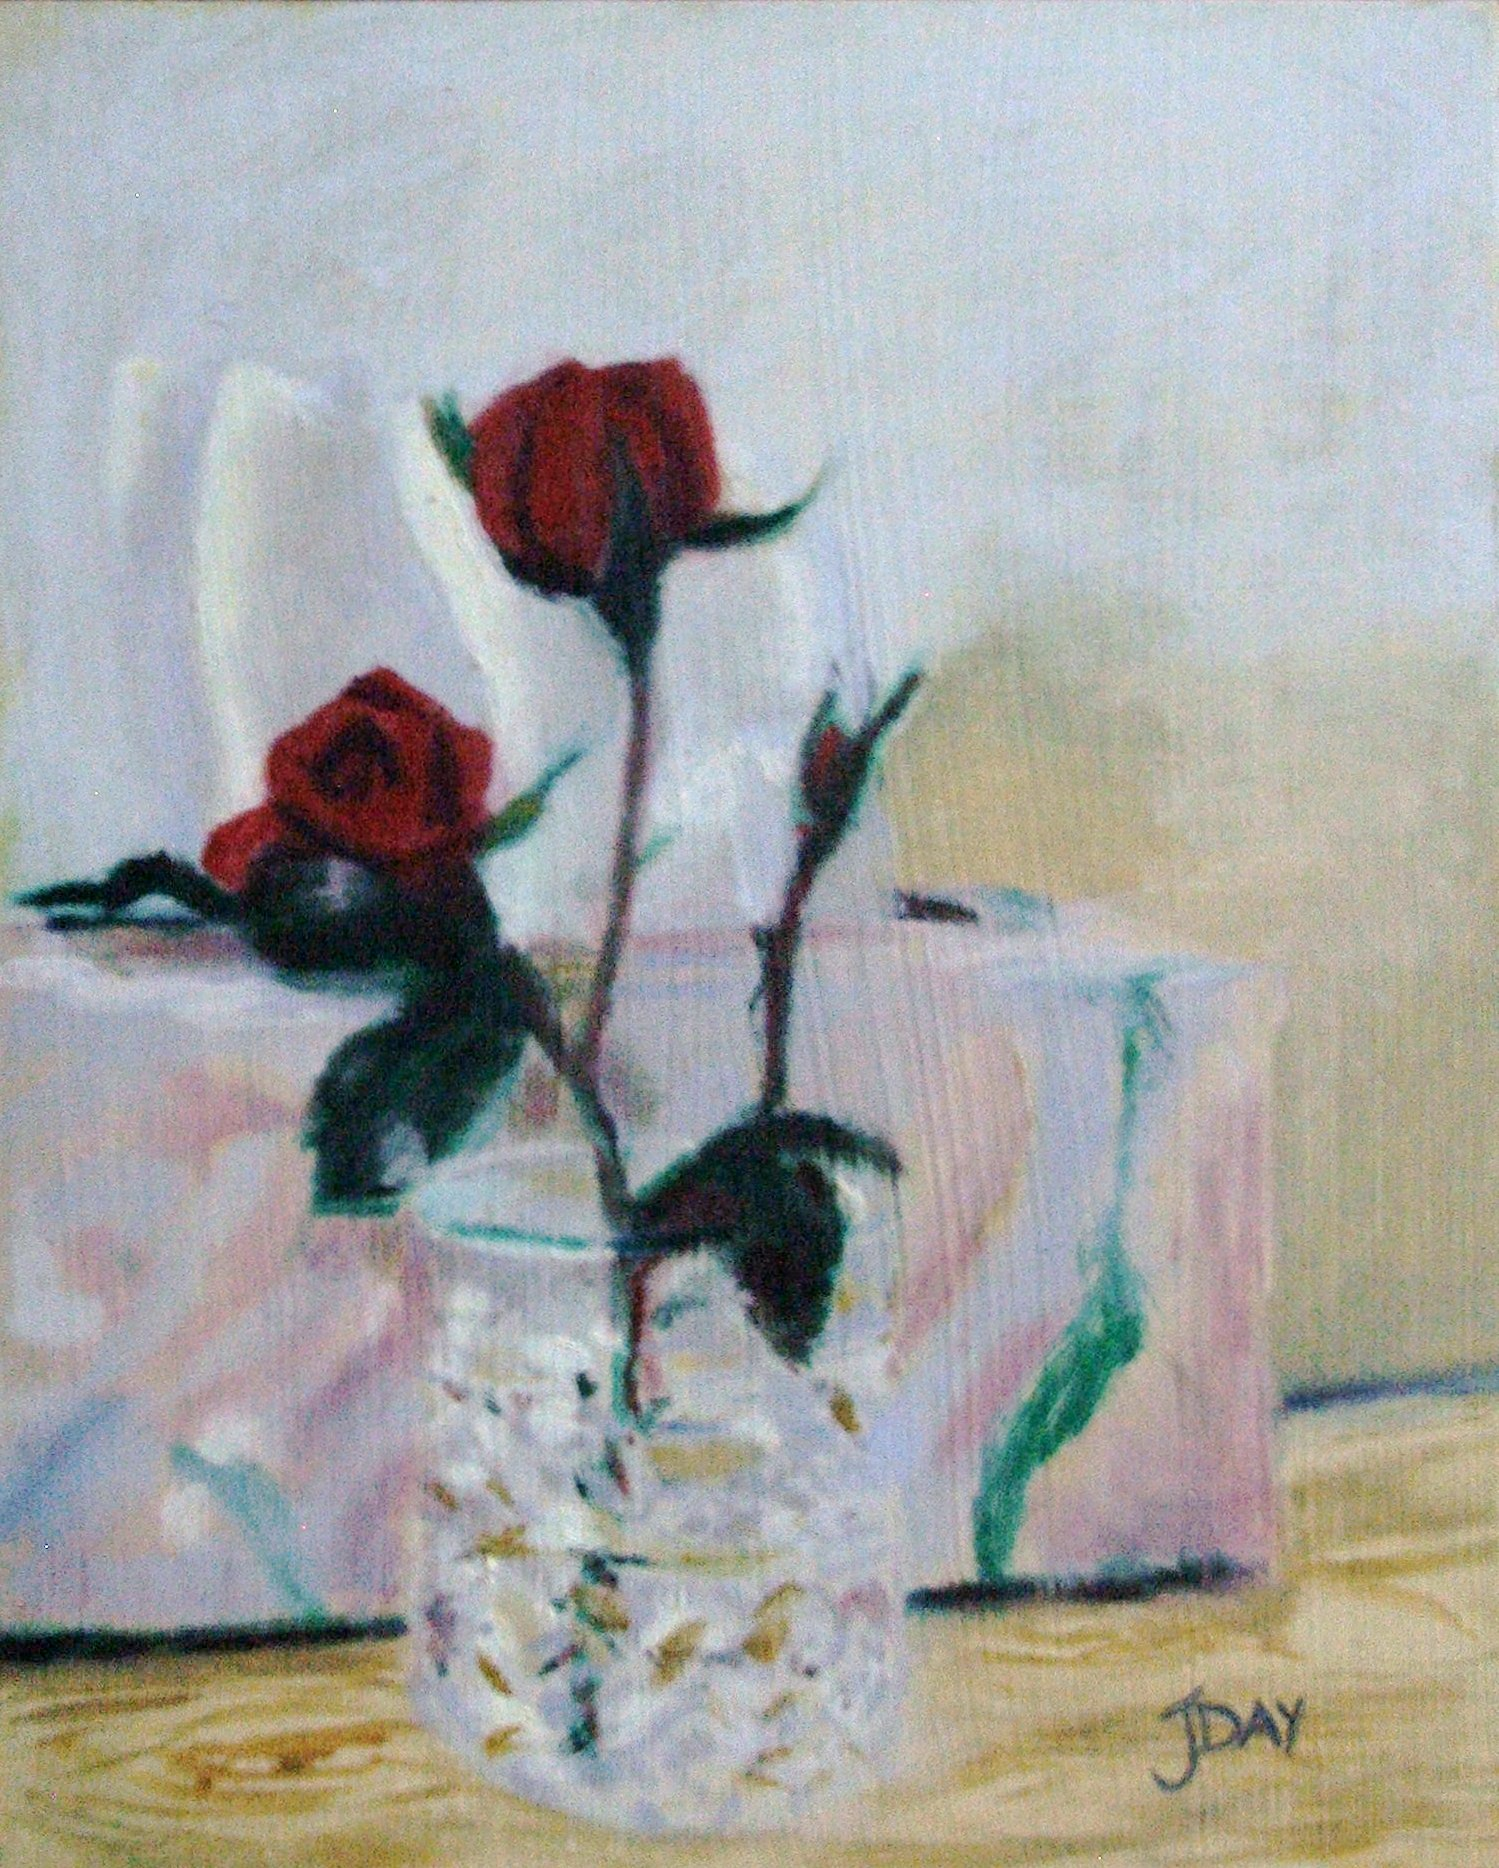 What Inspired Me To Paint A Rose In A Glass With A Tissue Box Still Life In Genesis Heat Set Oils?